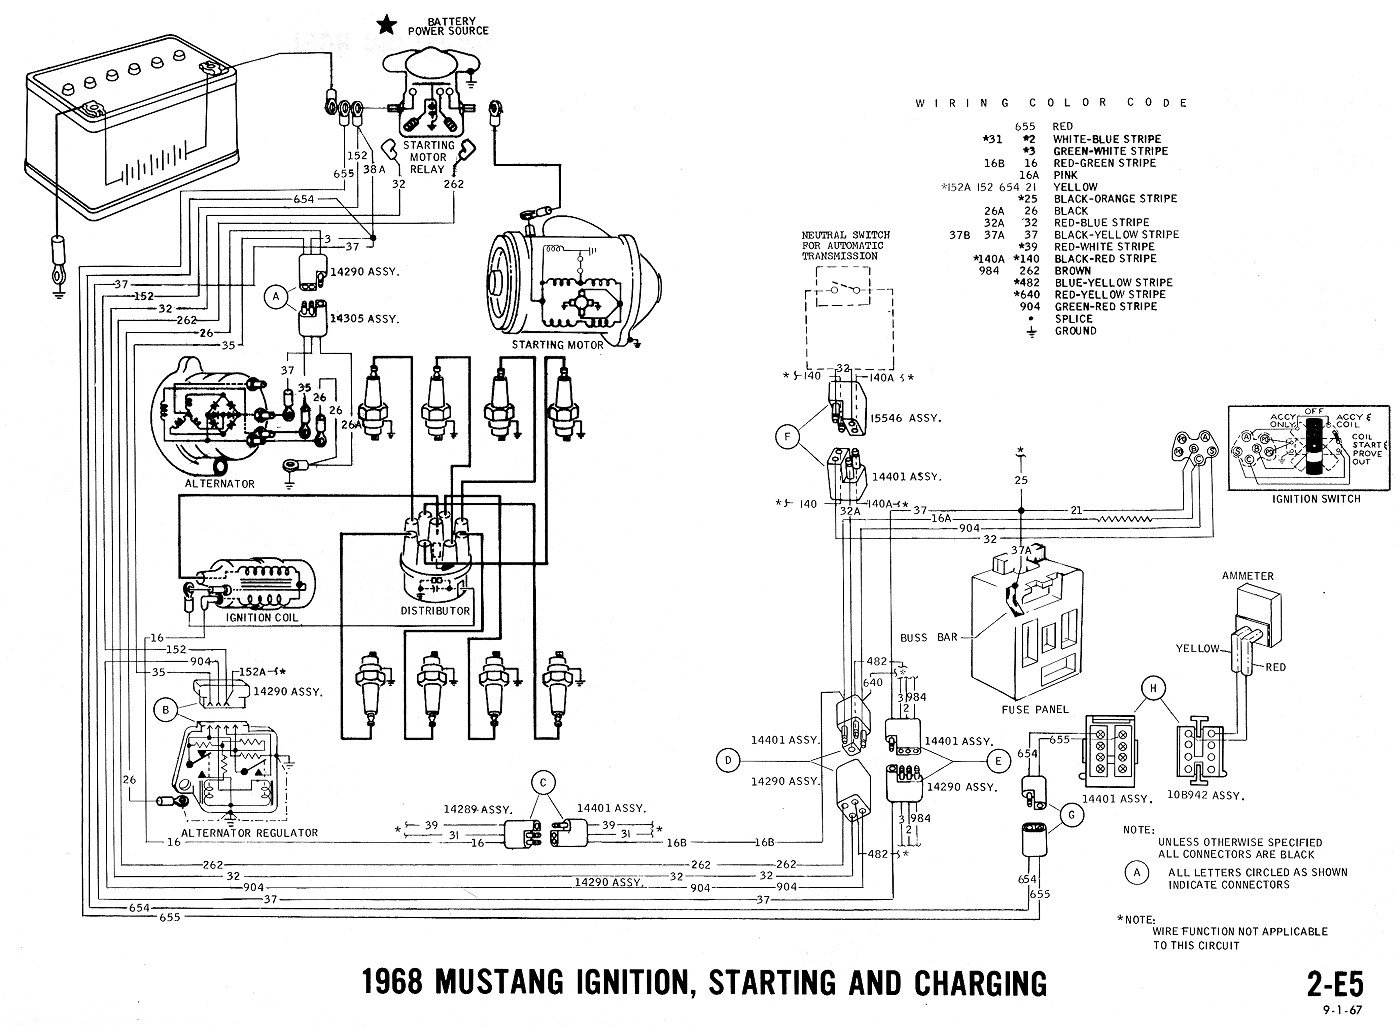 1968 mustang starter solenoid wiring diagram wiring new starter, single wire alternator, solenoid - '73 ... #1